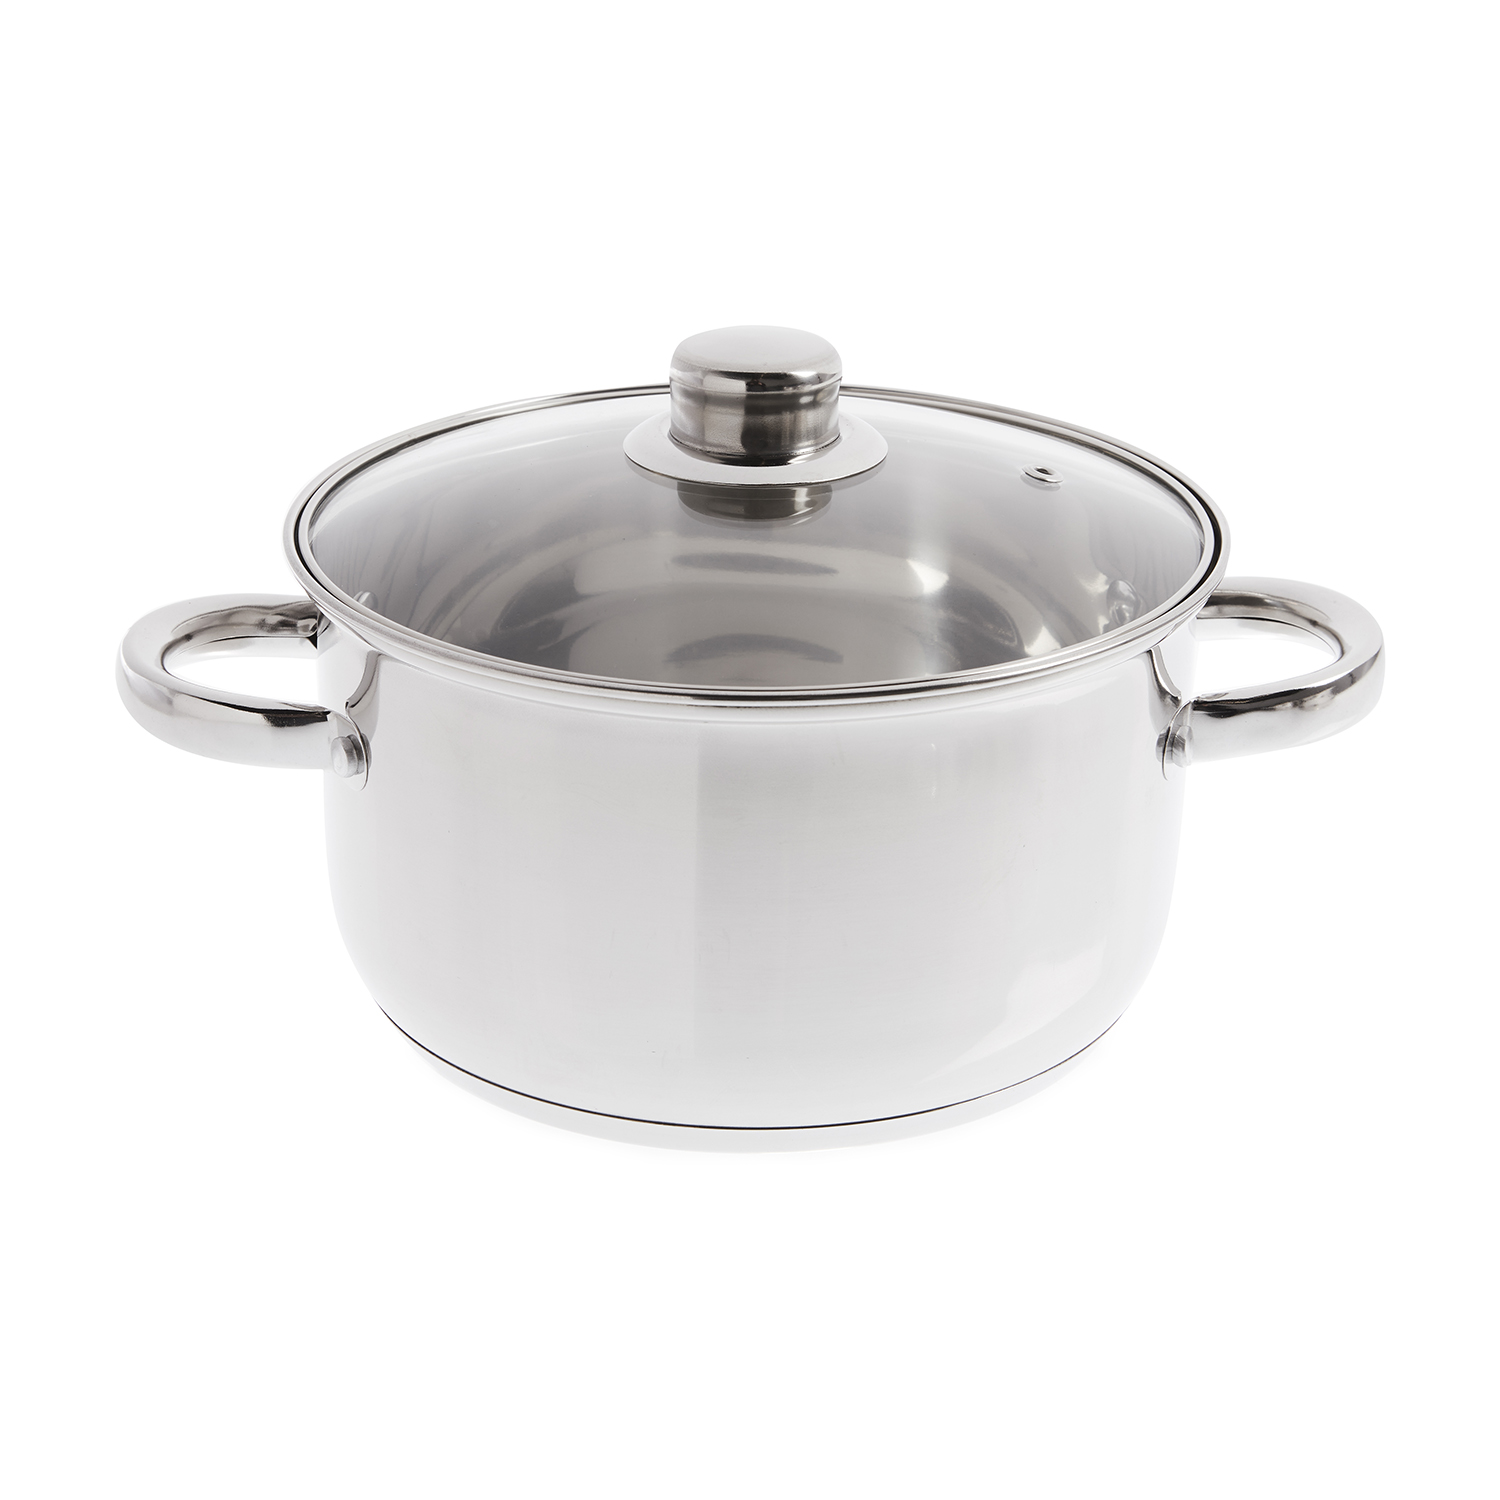 steamer kitchen tile colors for floor dynamic chef 3 tier set 20cm home store more tap to expand